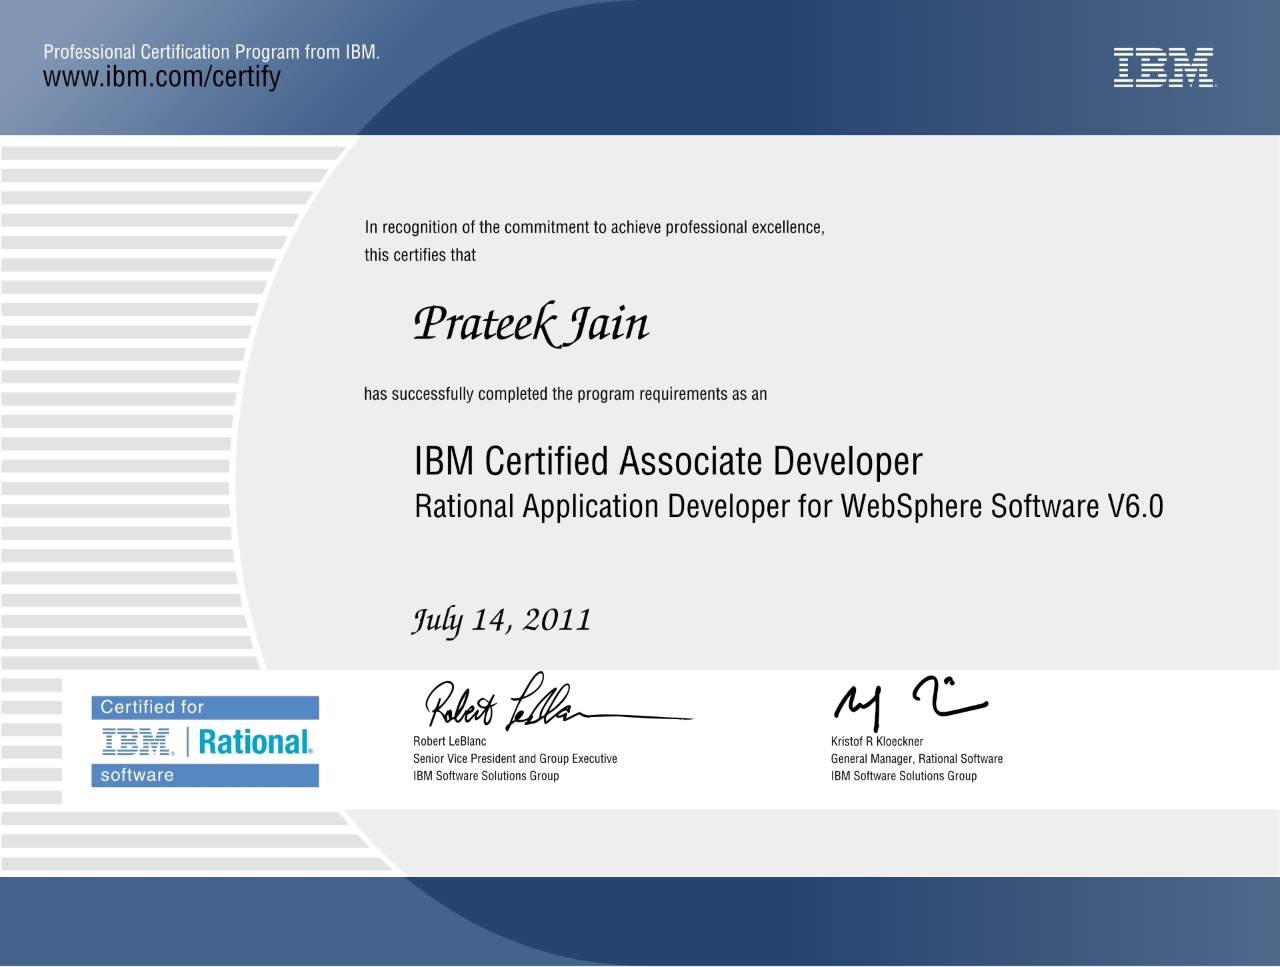 Certifications Prateek Jain